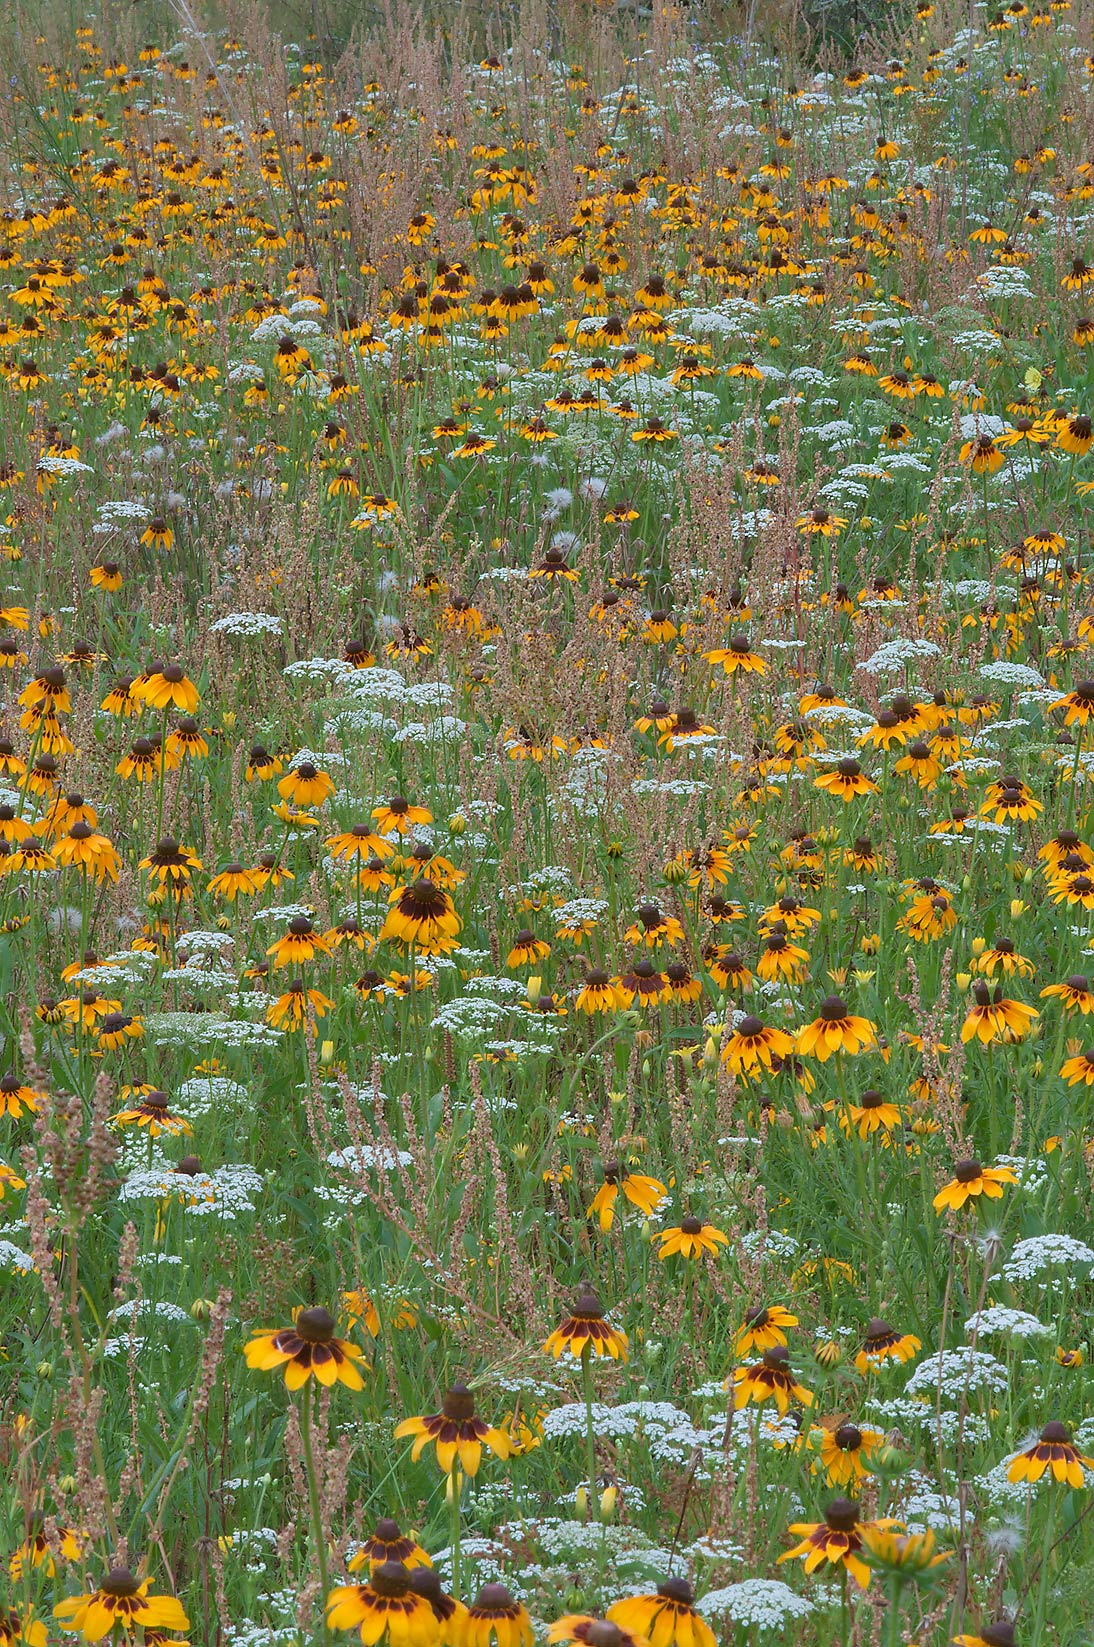 Meadow of flowers in Lick Creek Park. College Station, Texas